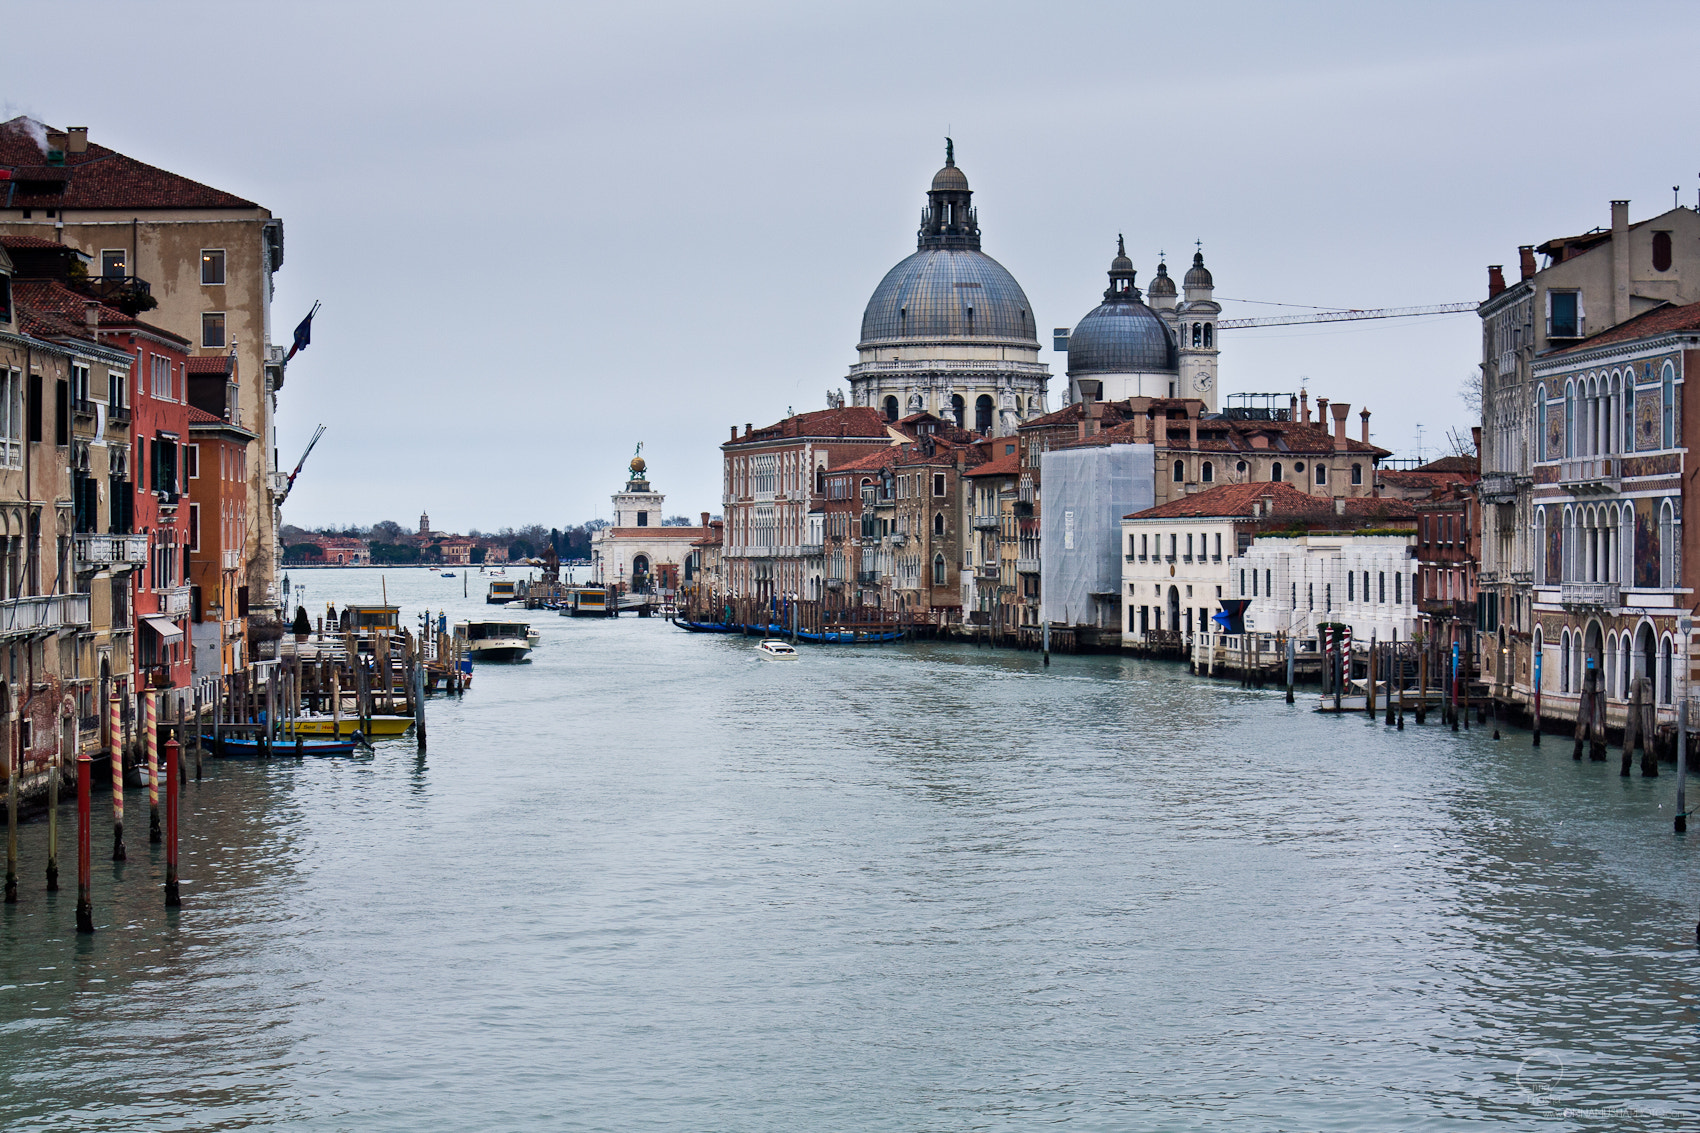 Photograph Venise typique - III by Audrey Meffray on 500px